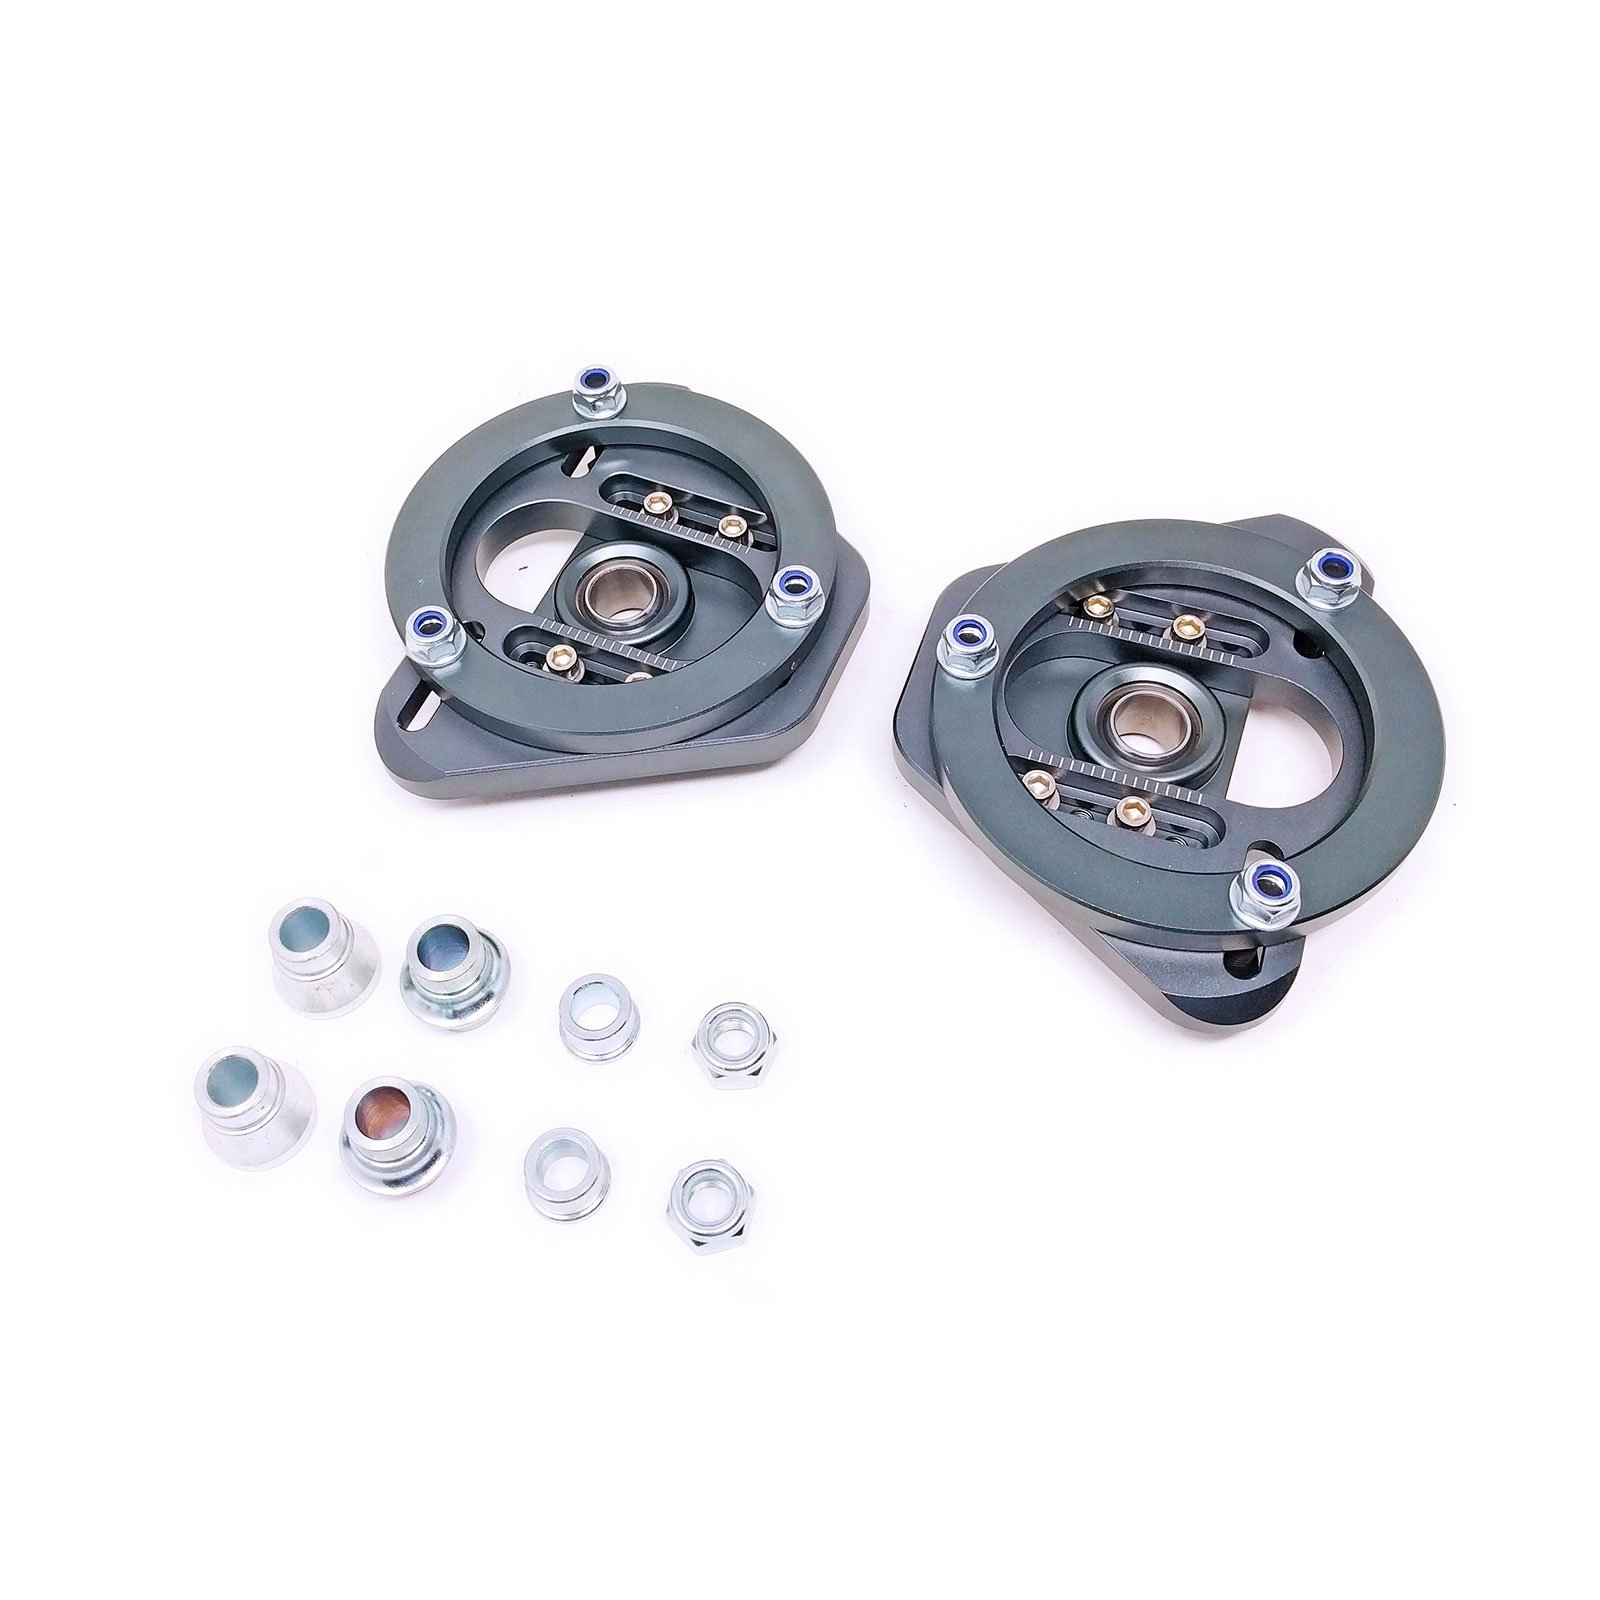 Godspeed MSS-THE02-B BMW 3-Series/M3 99-05 (E46) Adjustable Front Camber & Caster Plate